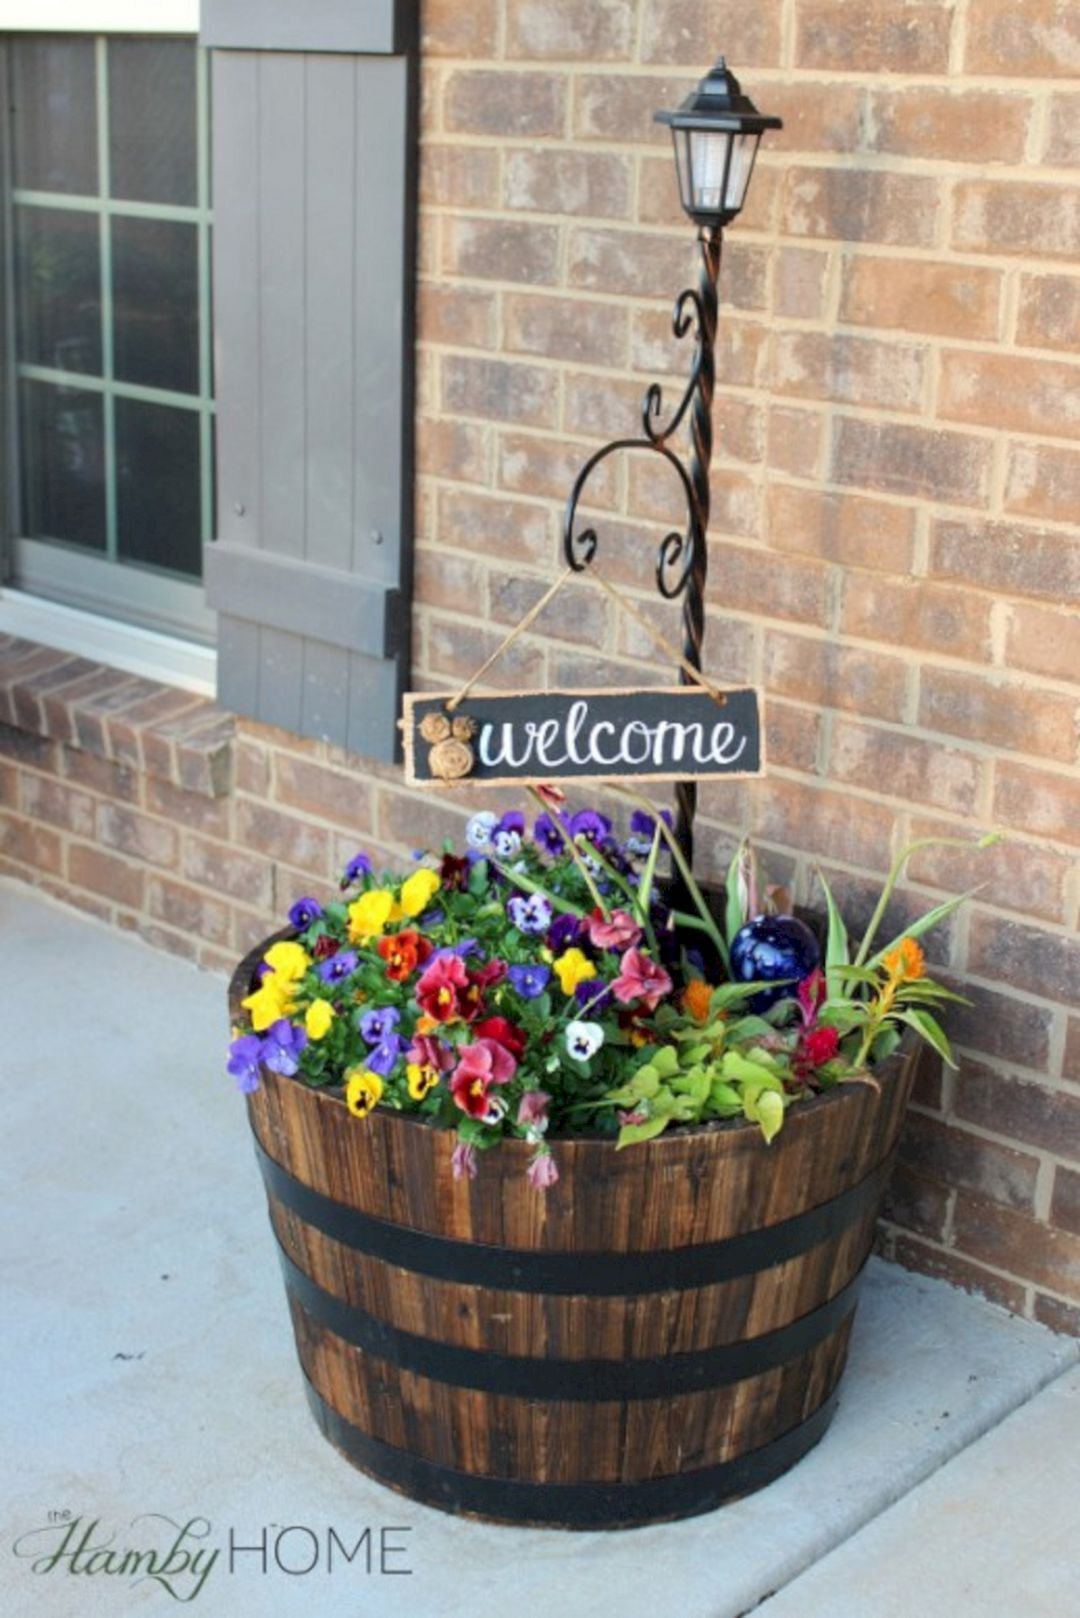 75 Most Antique And Beautiful Farmhouse Front Porch Decoration Ideas 0546